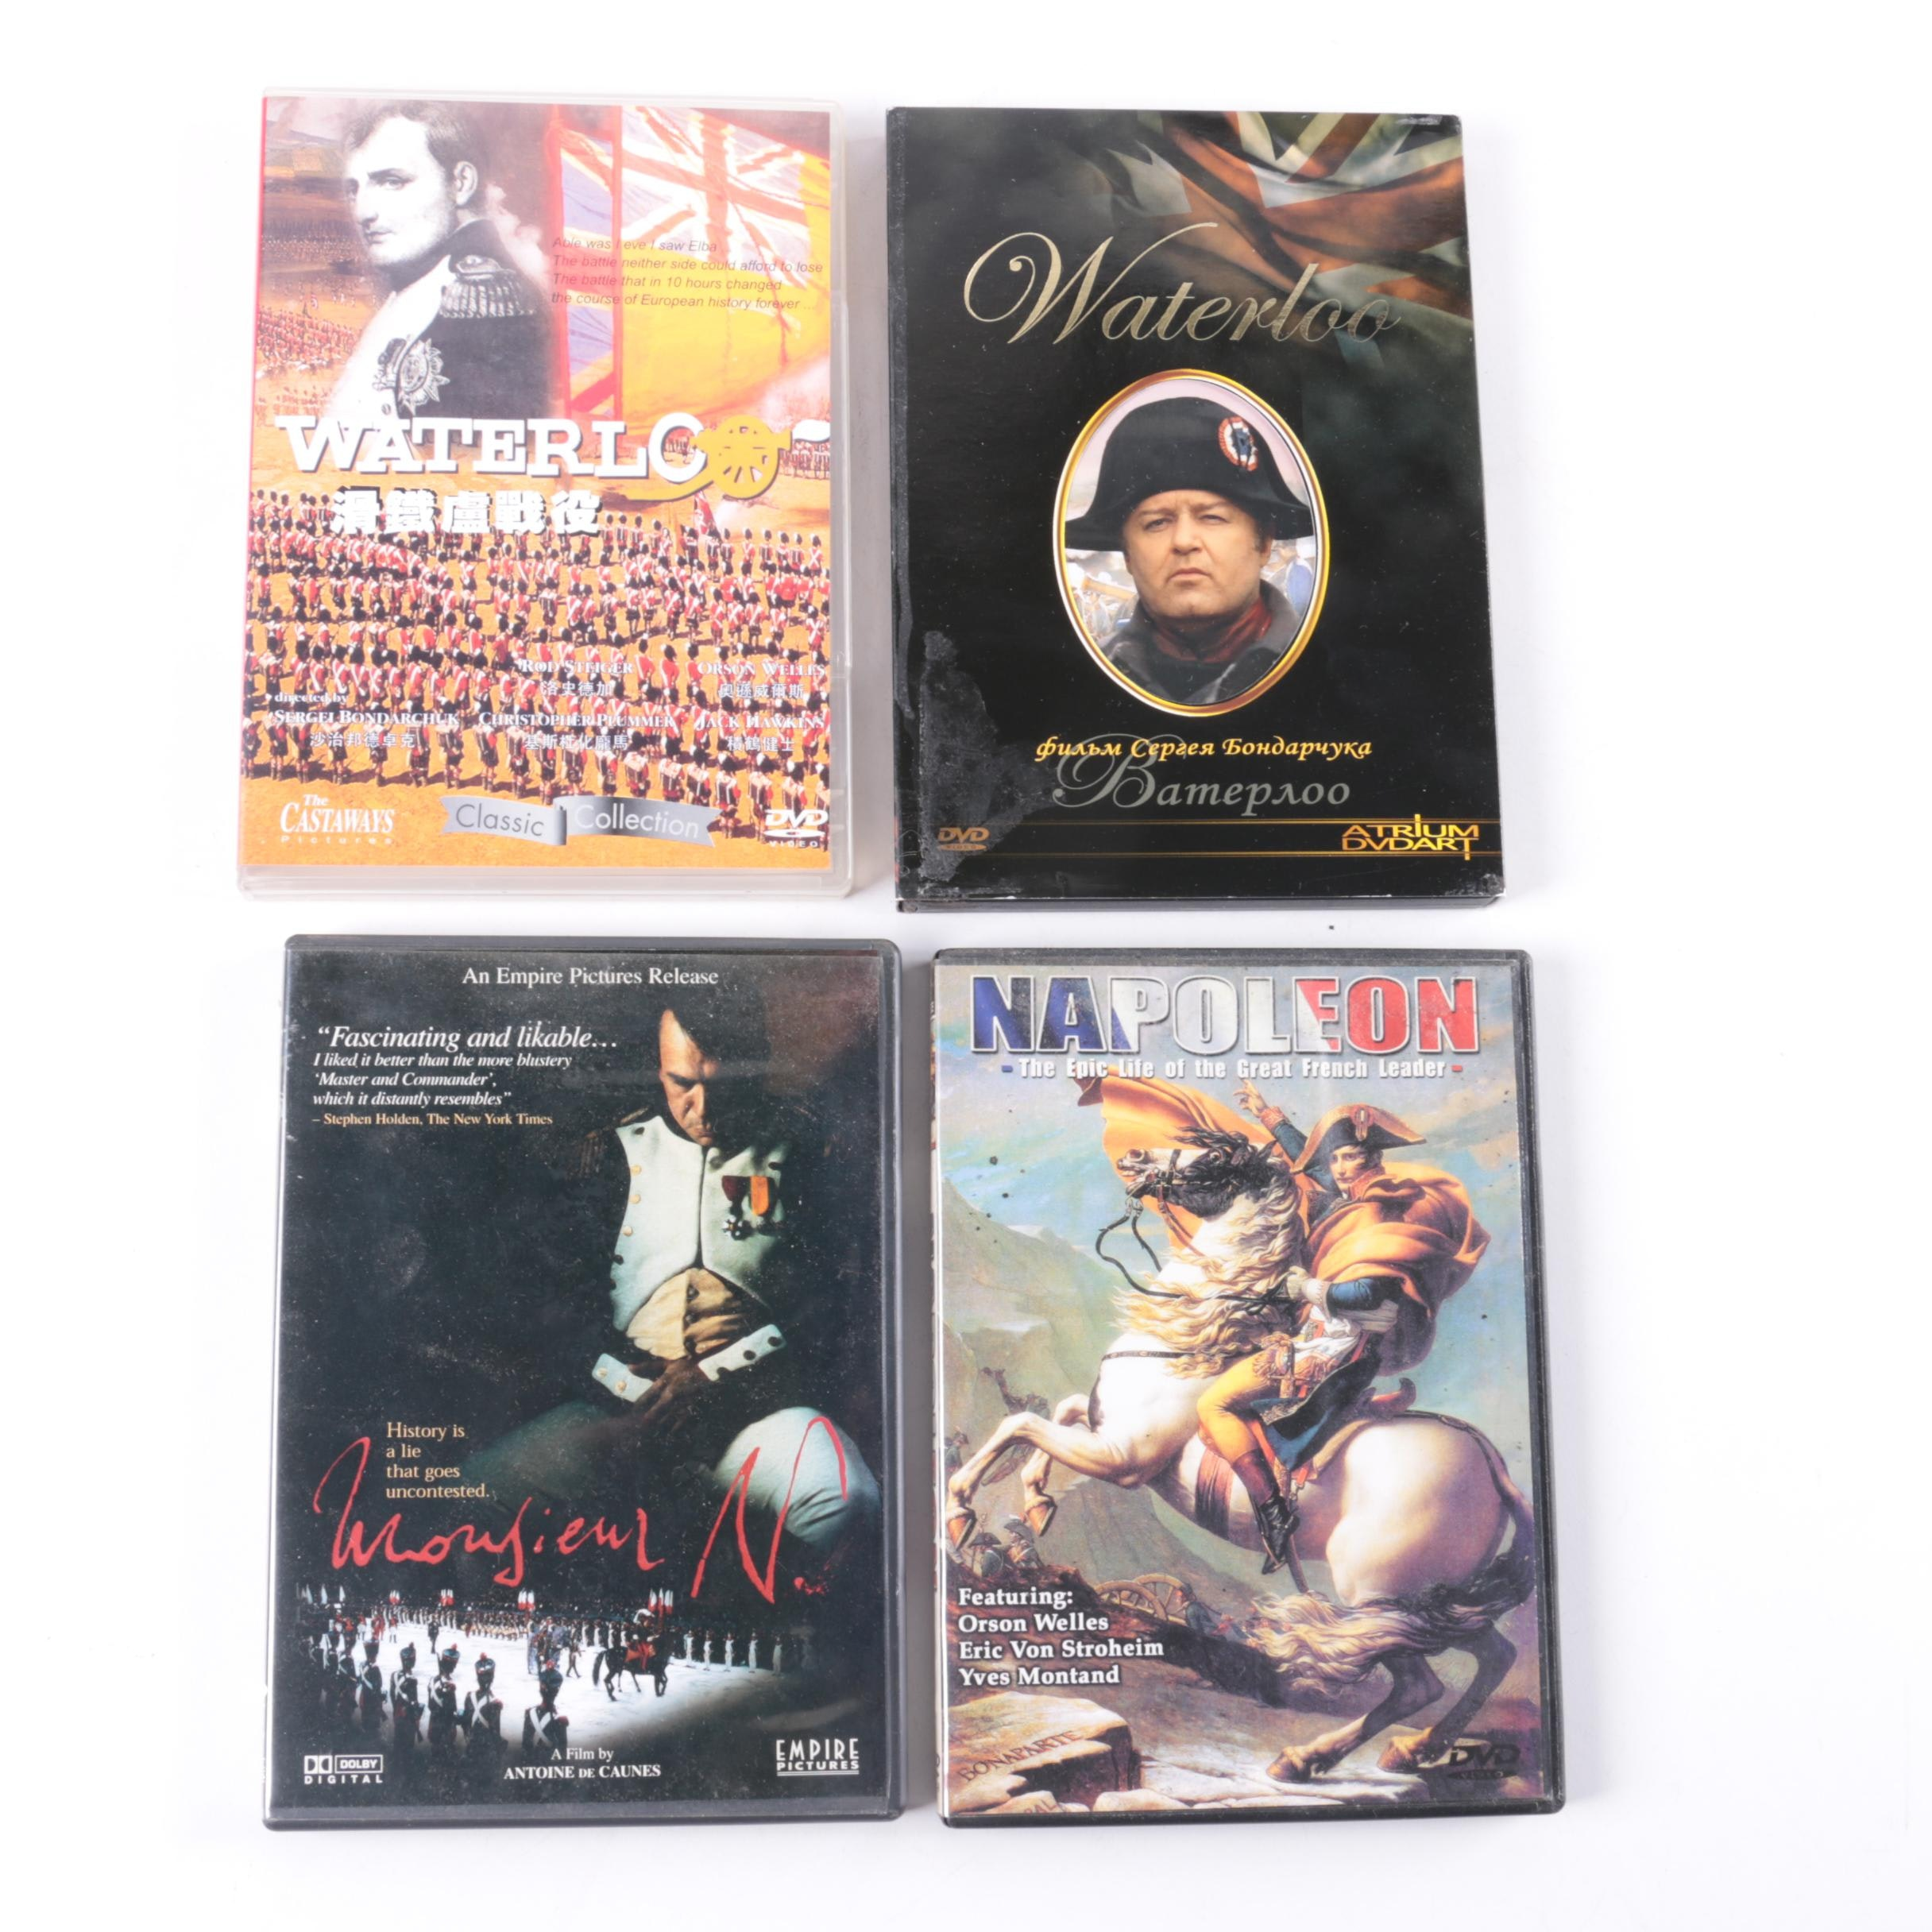 Napoleon Themed Film DVD Collection